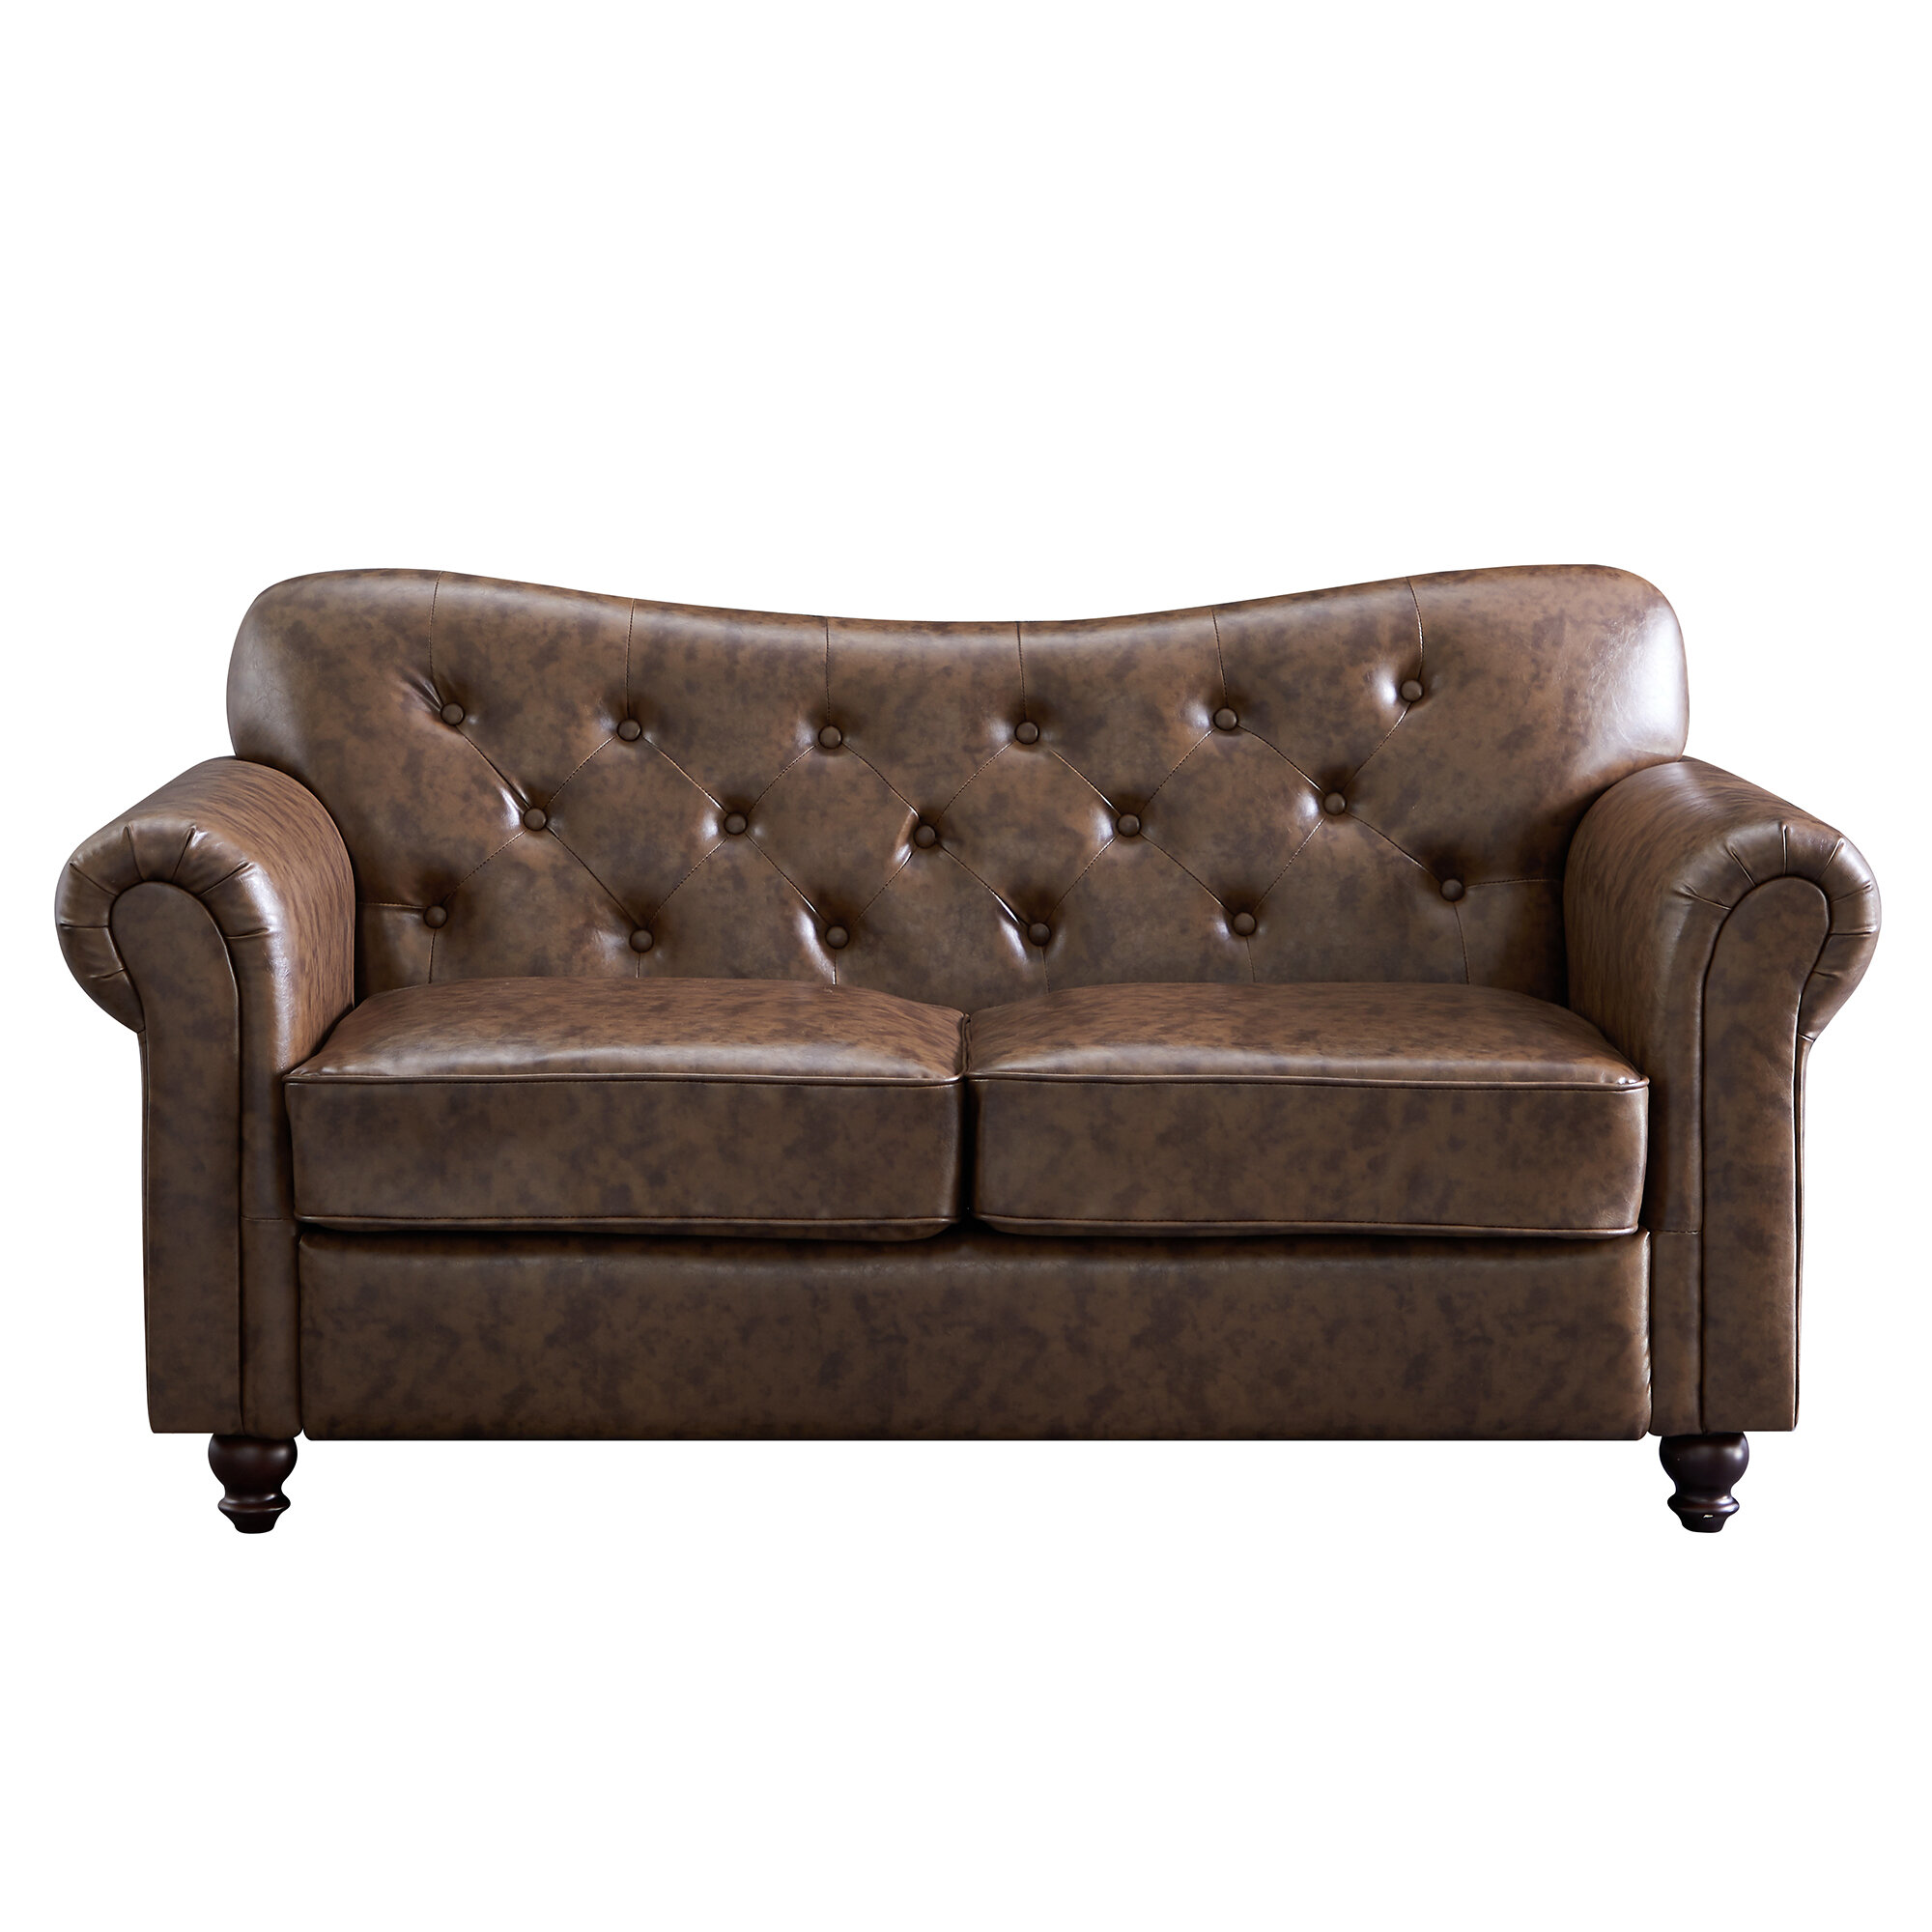 Alcott Hill Orval 64 17 Rolled Arm Loveseat Wayfair